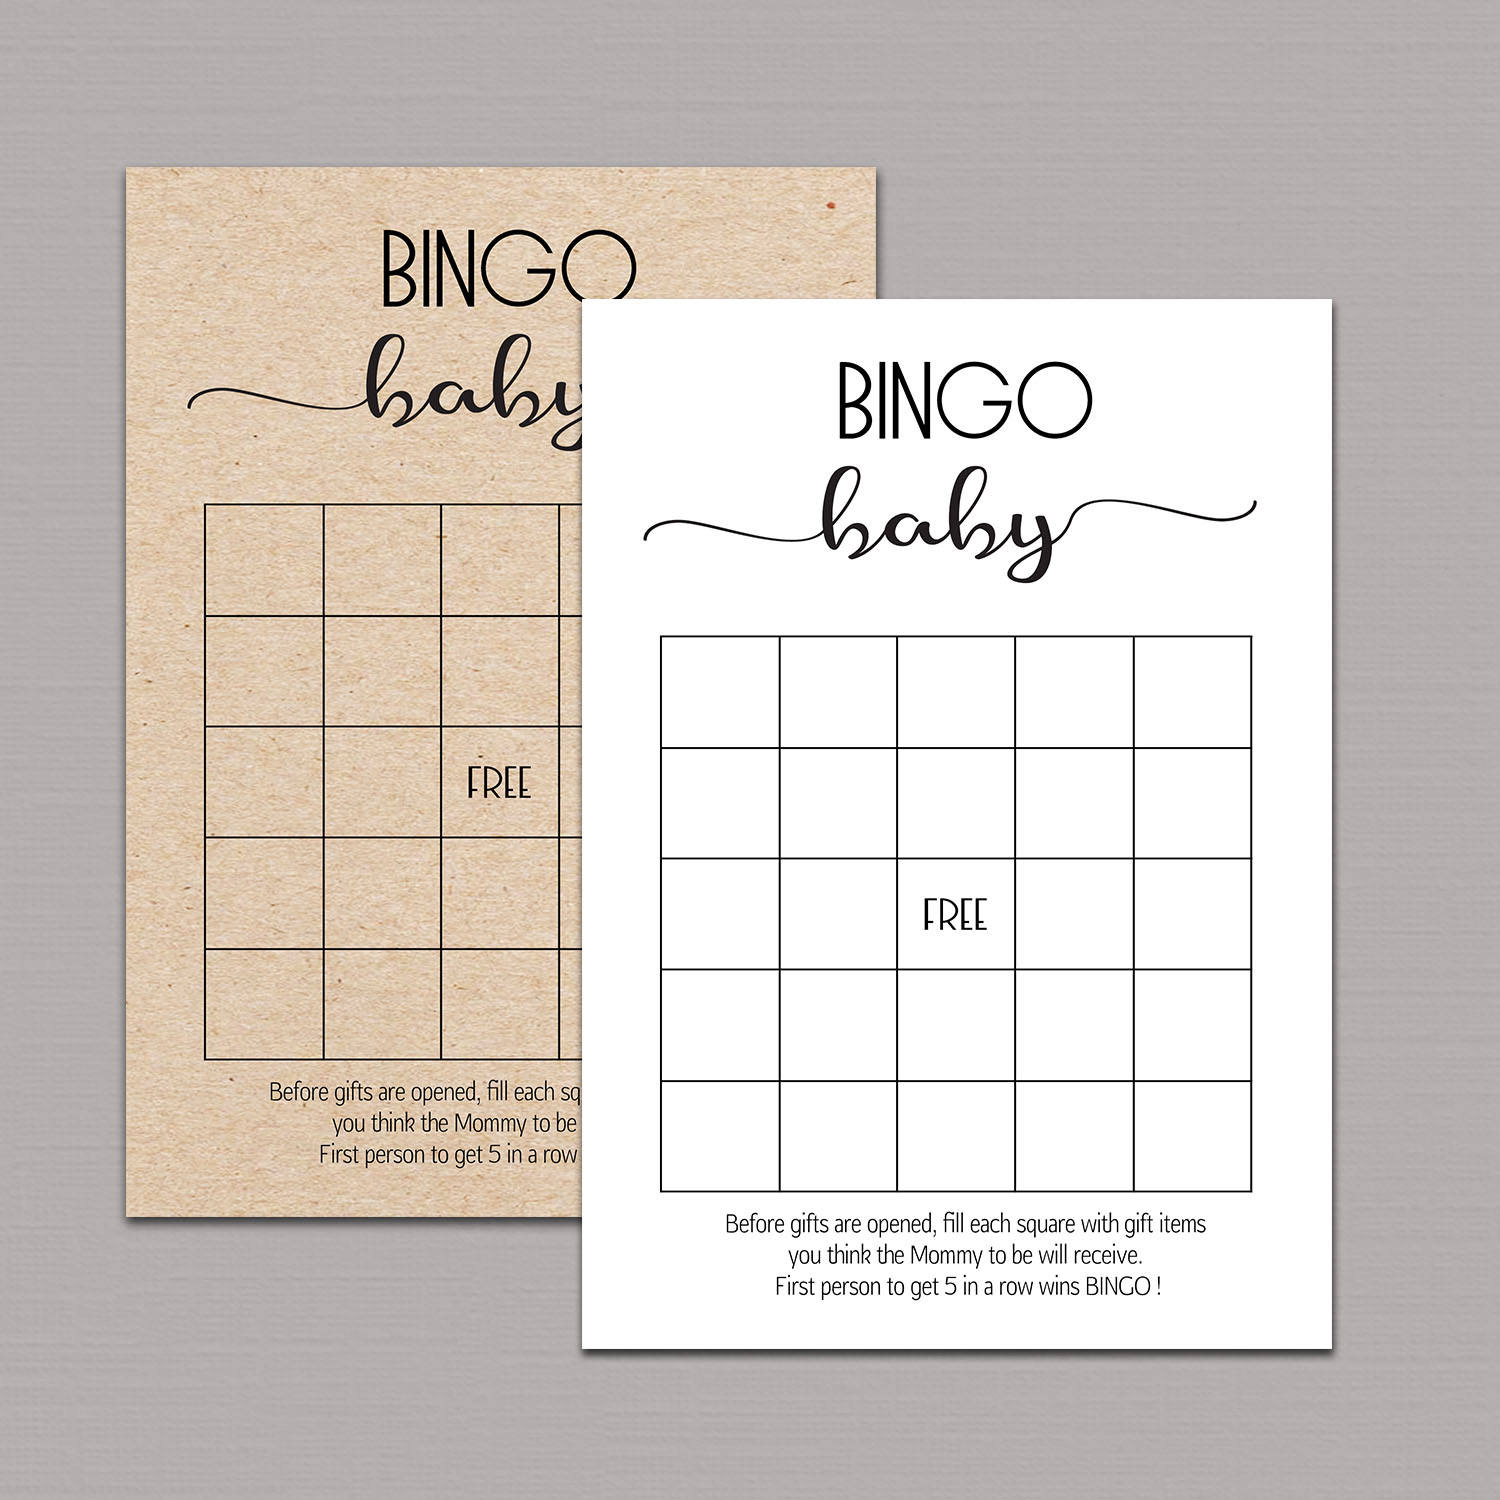 Baby Shower Bingo Cards Baby Shower Bingo Printable Baby | Etsy - 50 Free Printable Baby Bingo Cards